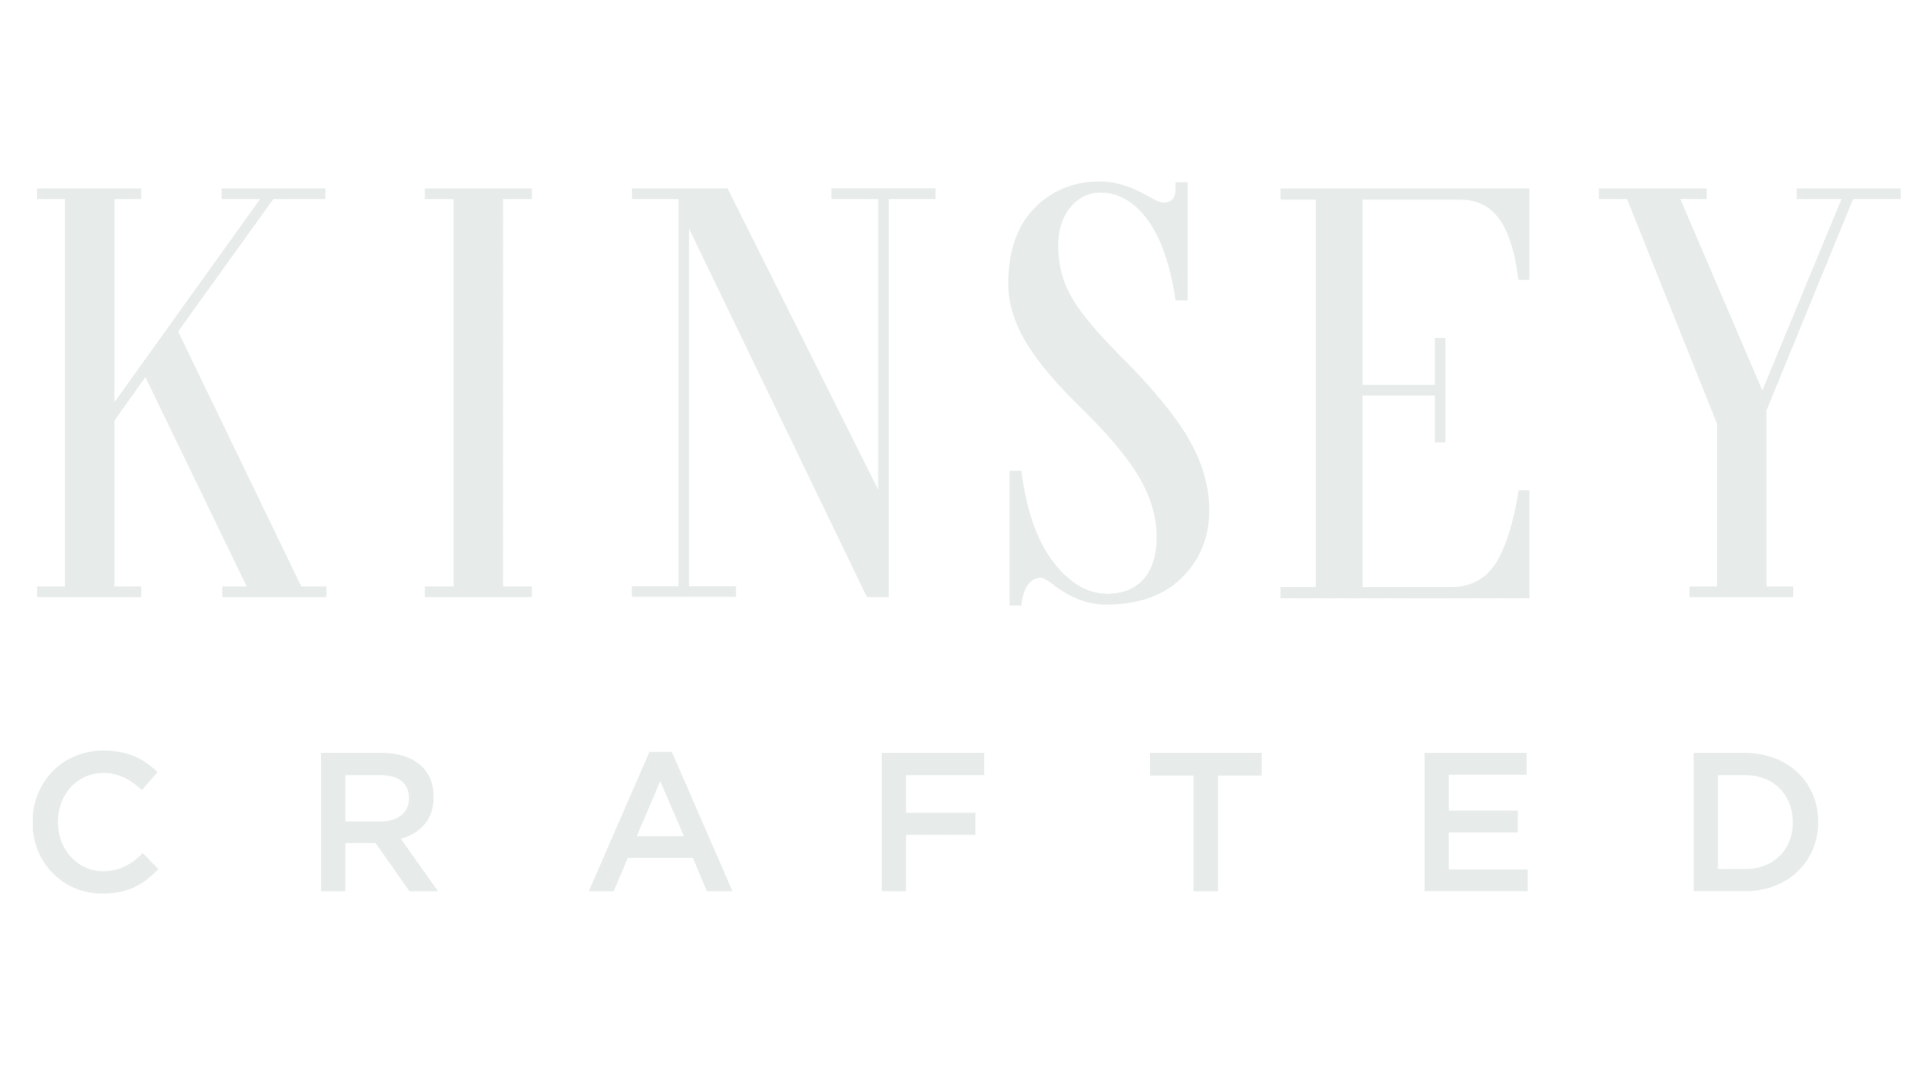 Kinsey Crafted logo